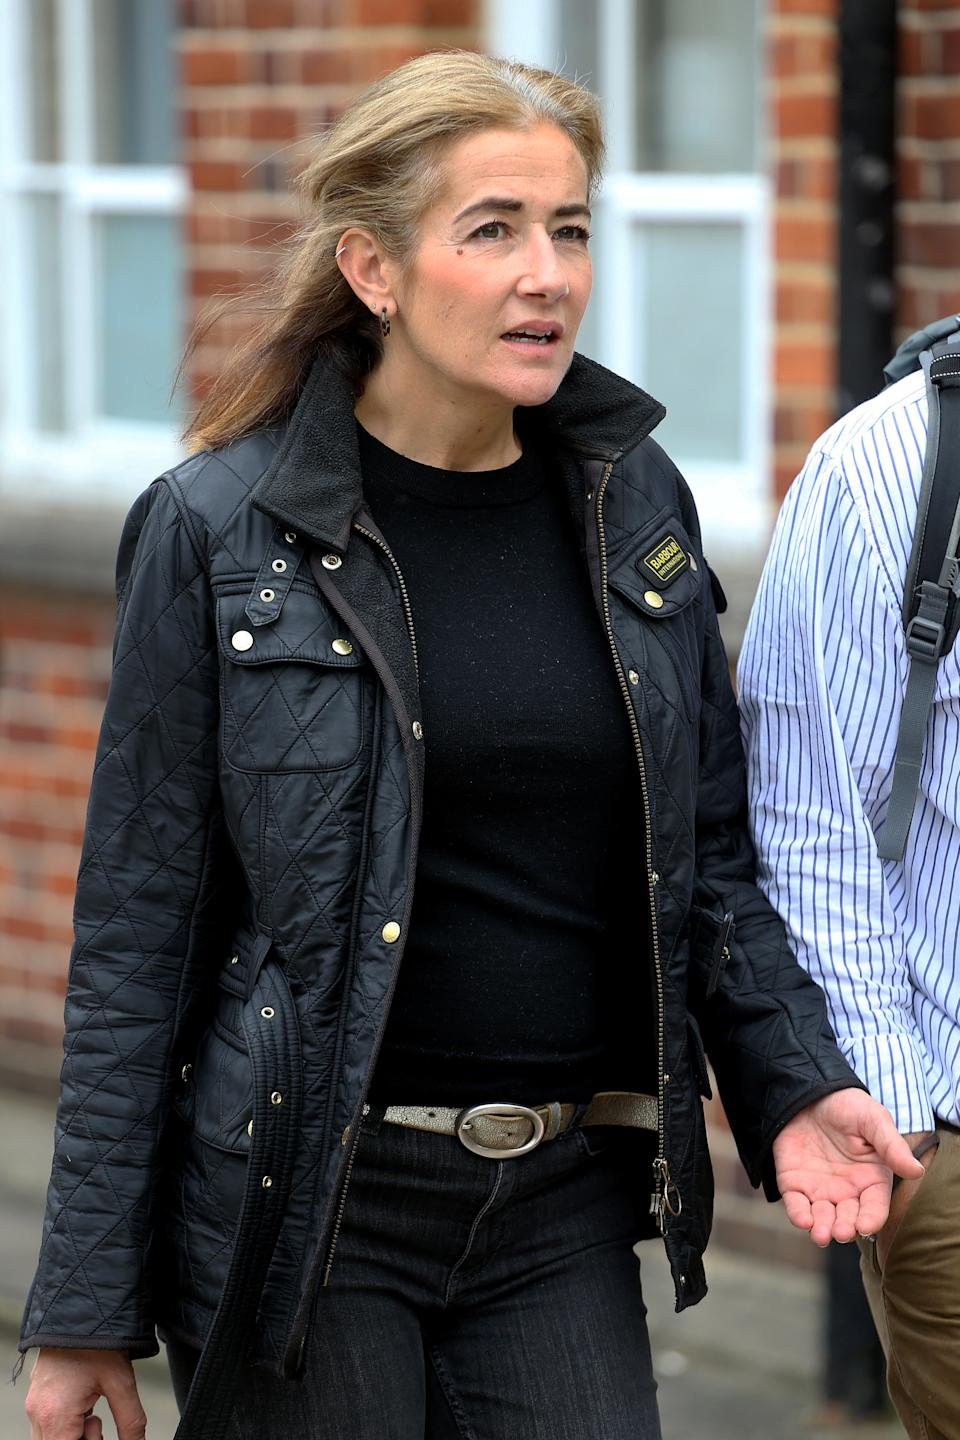 Emma Langford, 47, leaves Uxbridge Magistrates Court, after appearing accused of drunkenly assaulting three people aboard a British Airways flight.